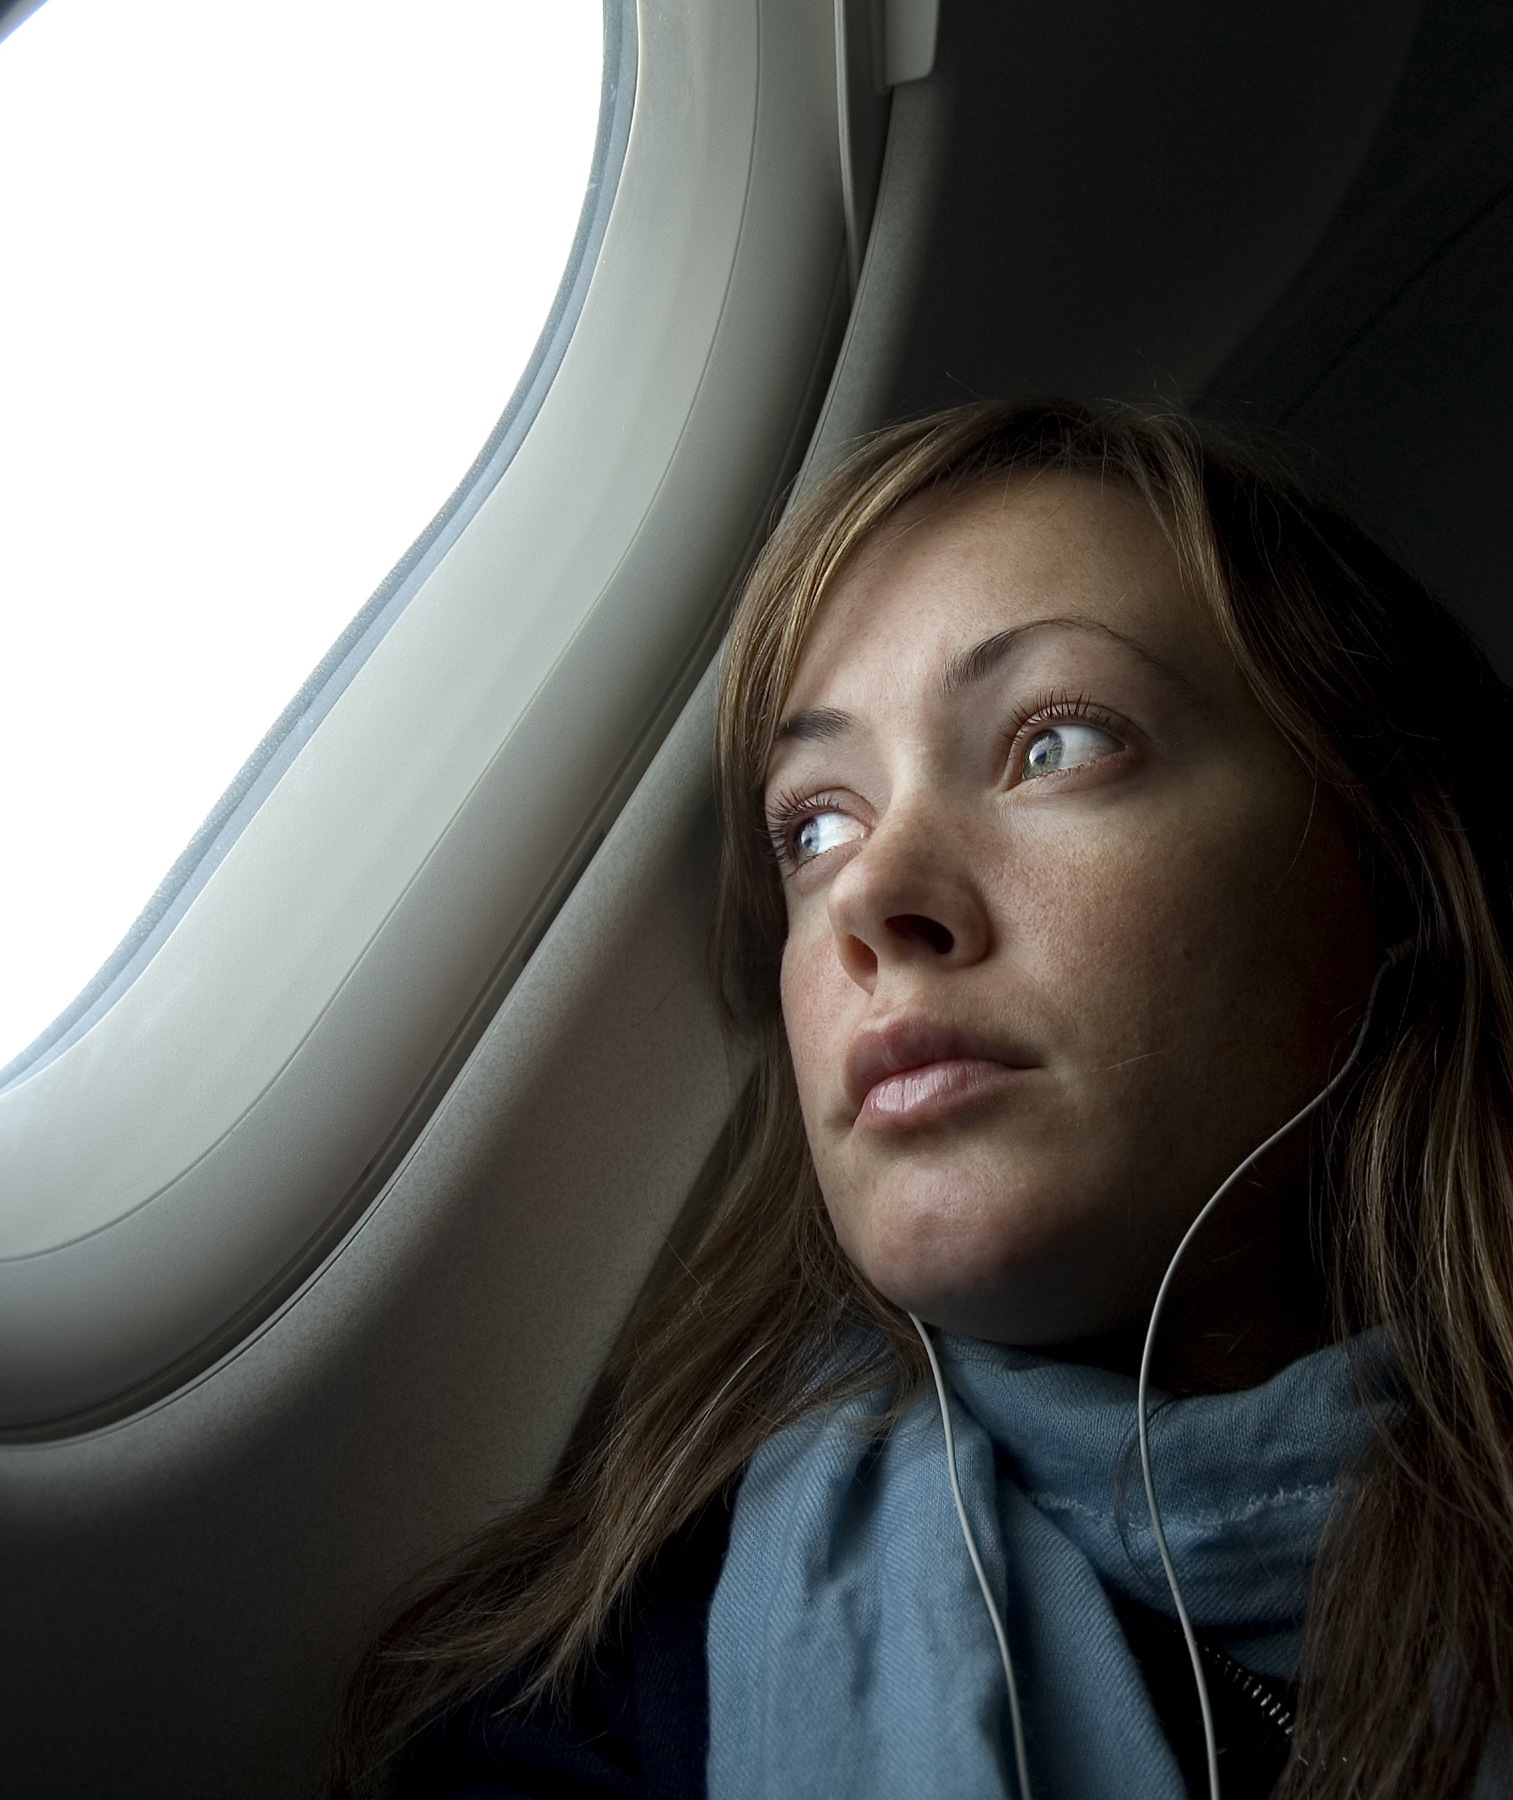 Sad woman on a plane